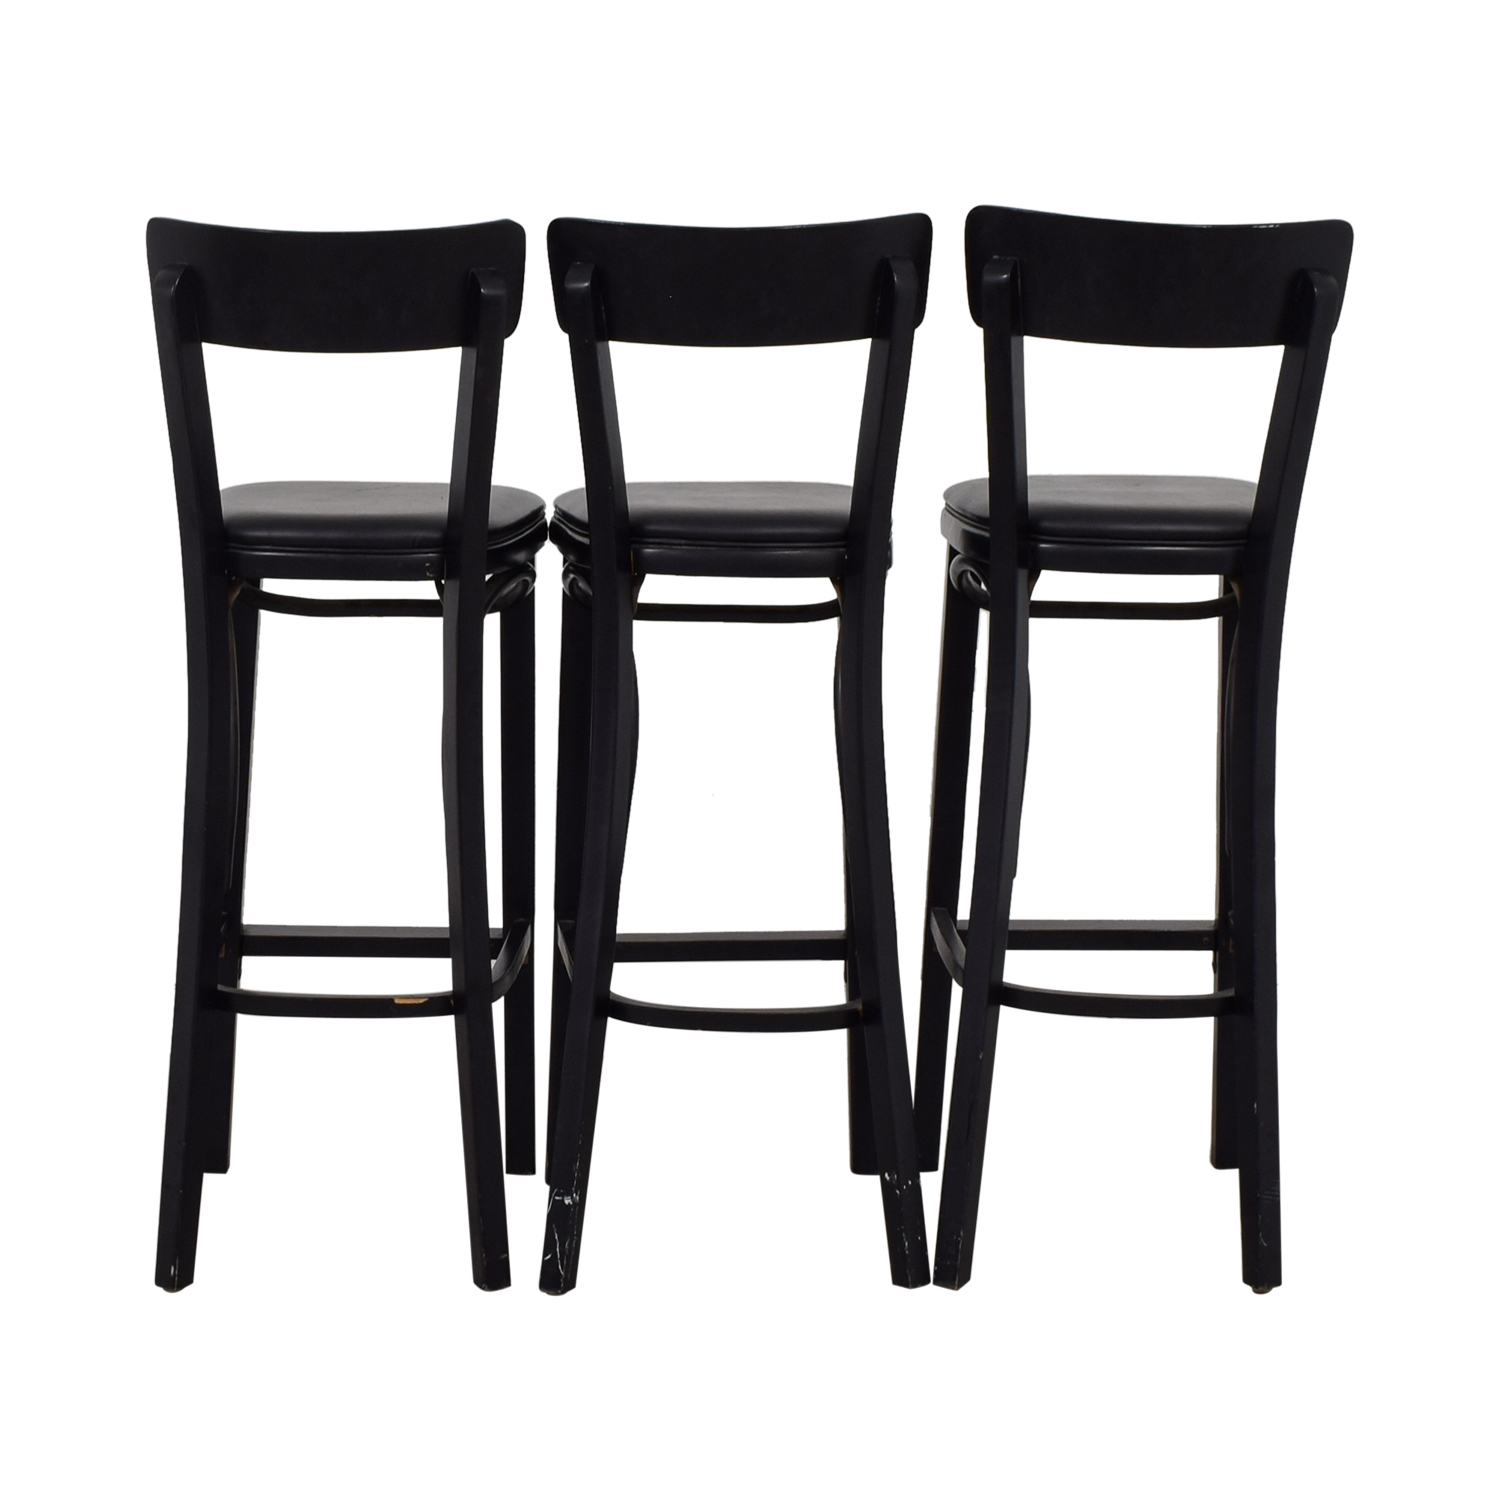 Bar Stools For Sale 70 Off Black Bar Stools Chairs